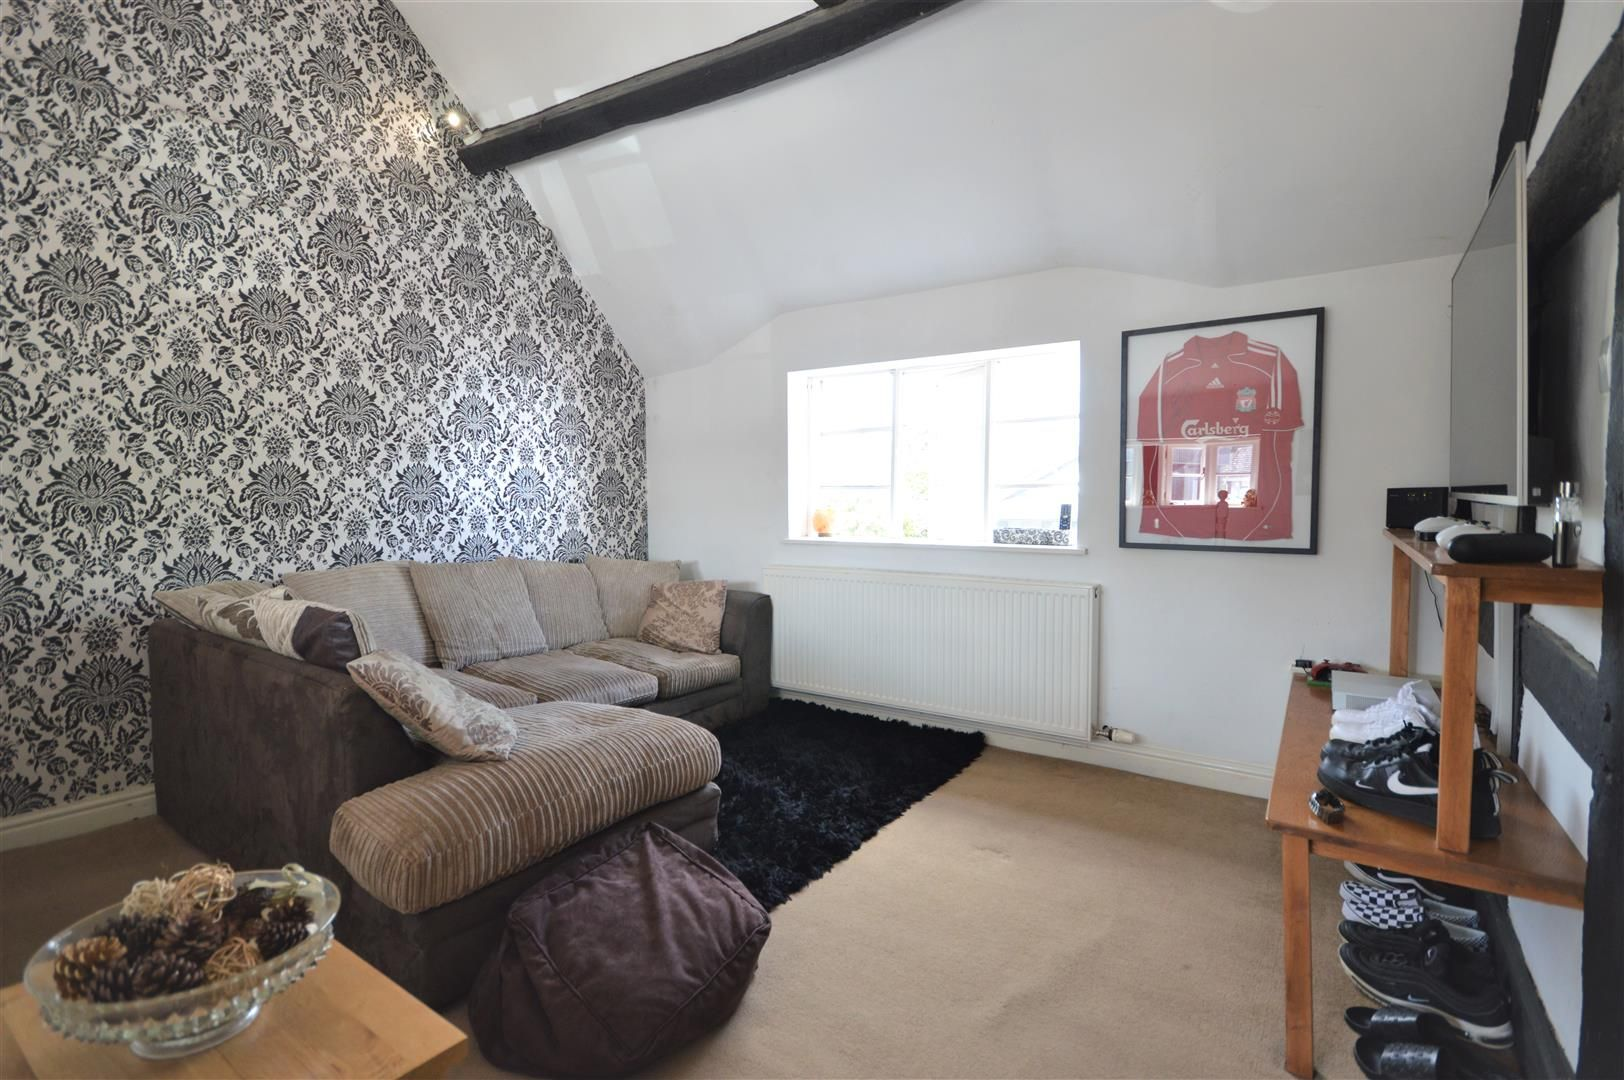 1 bed flat to rent in Kingsland, HR6